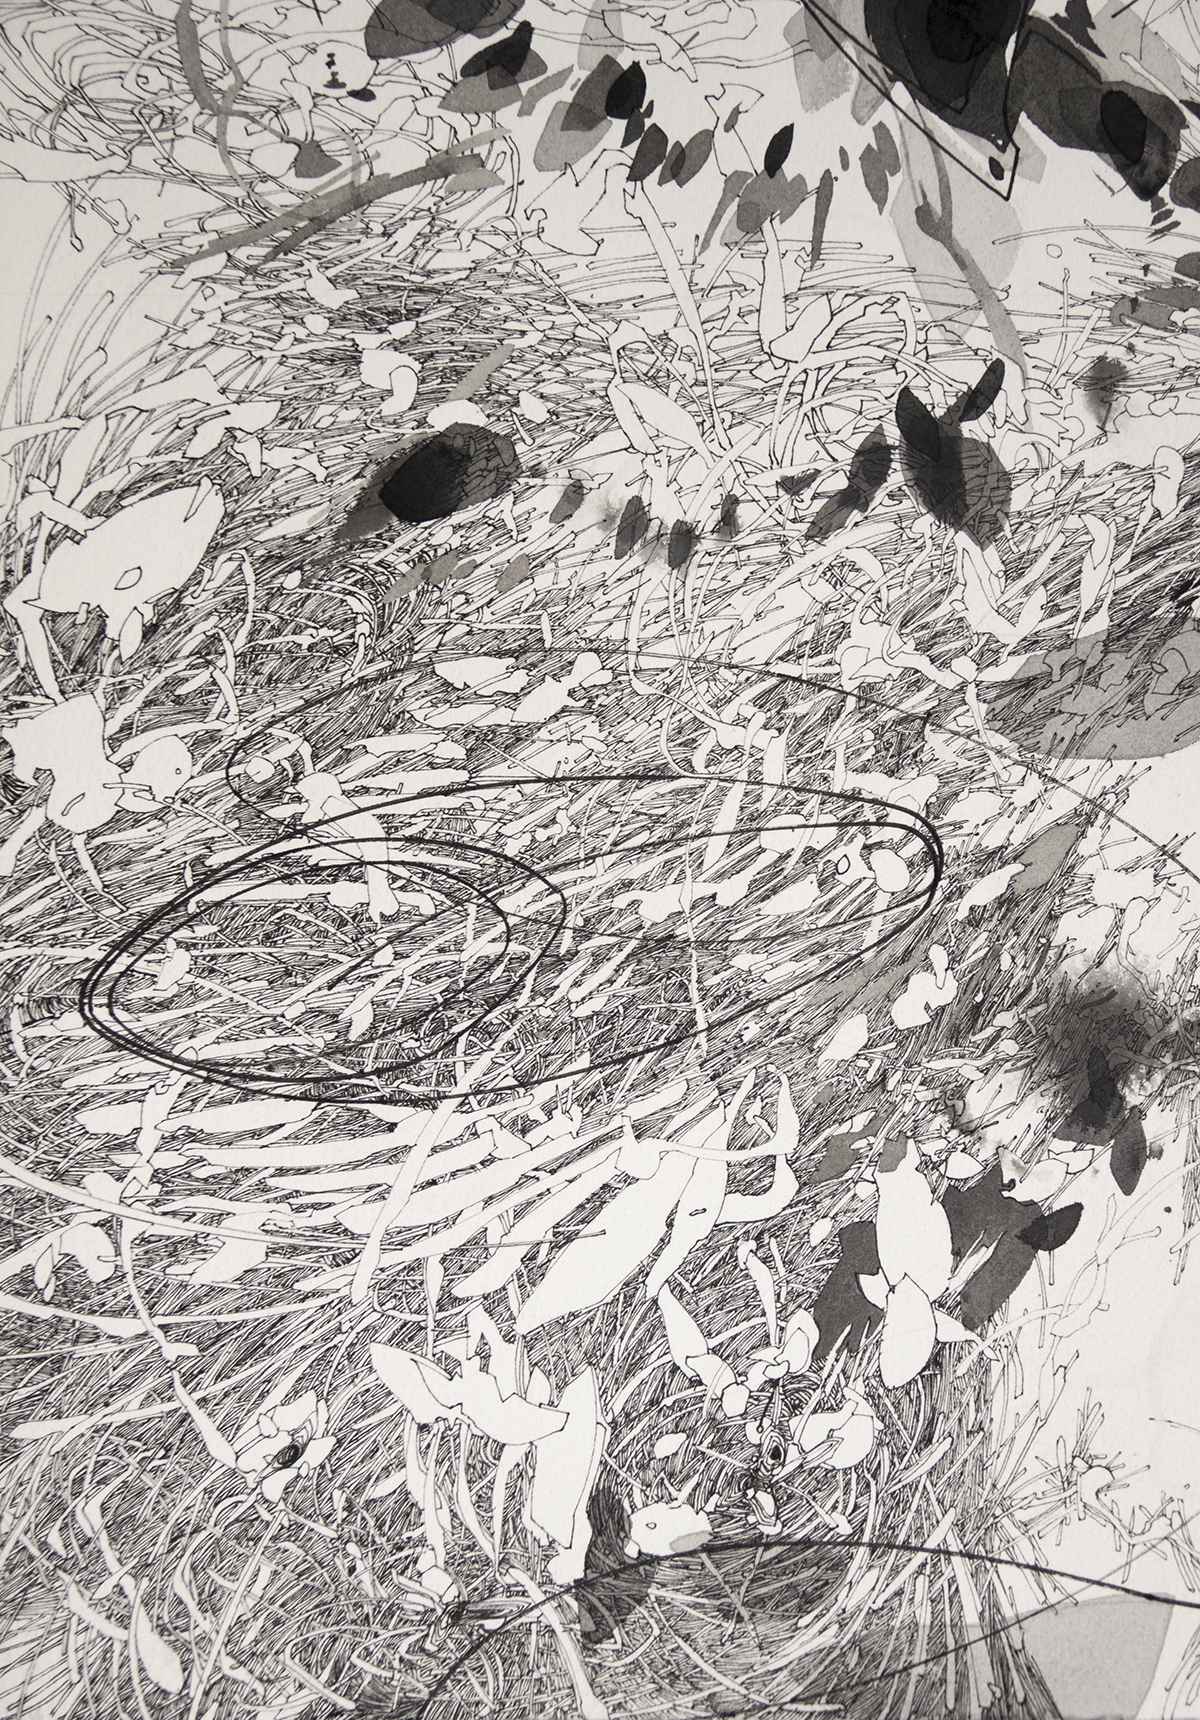 Untitled 4 (detail)